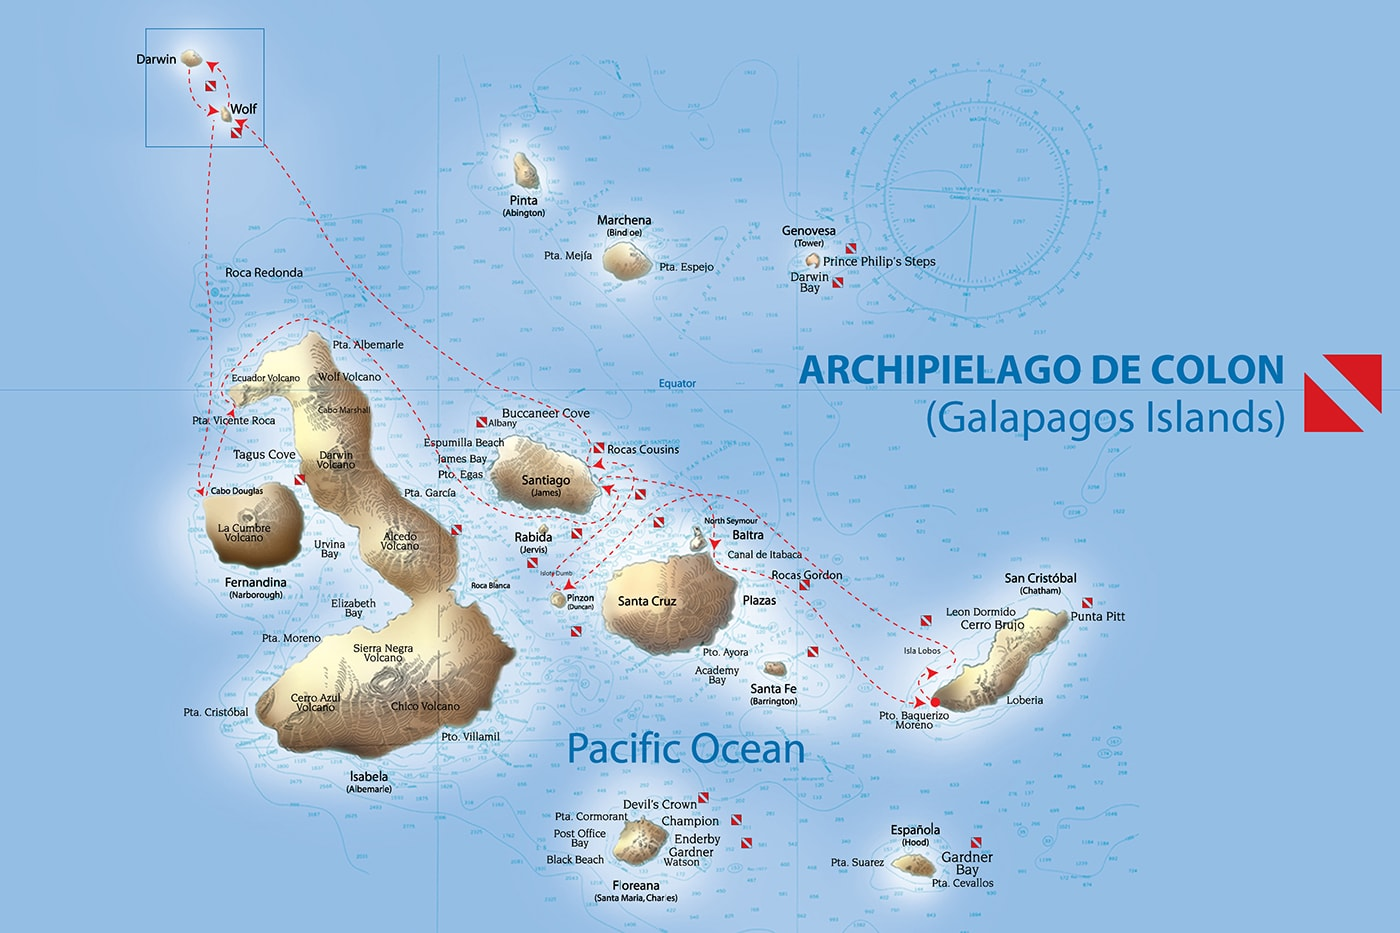 A typical one-week itinerary for the Galapagos Sky.